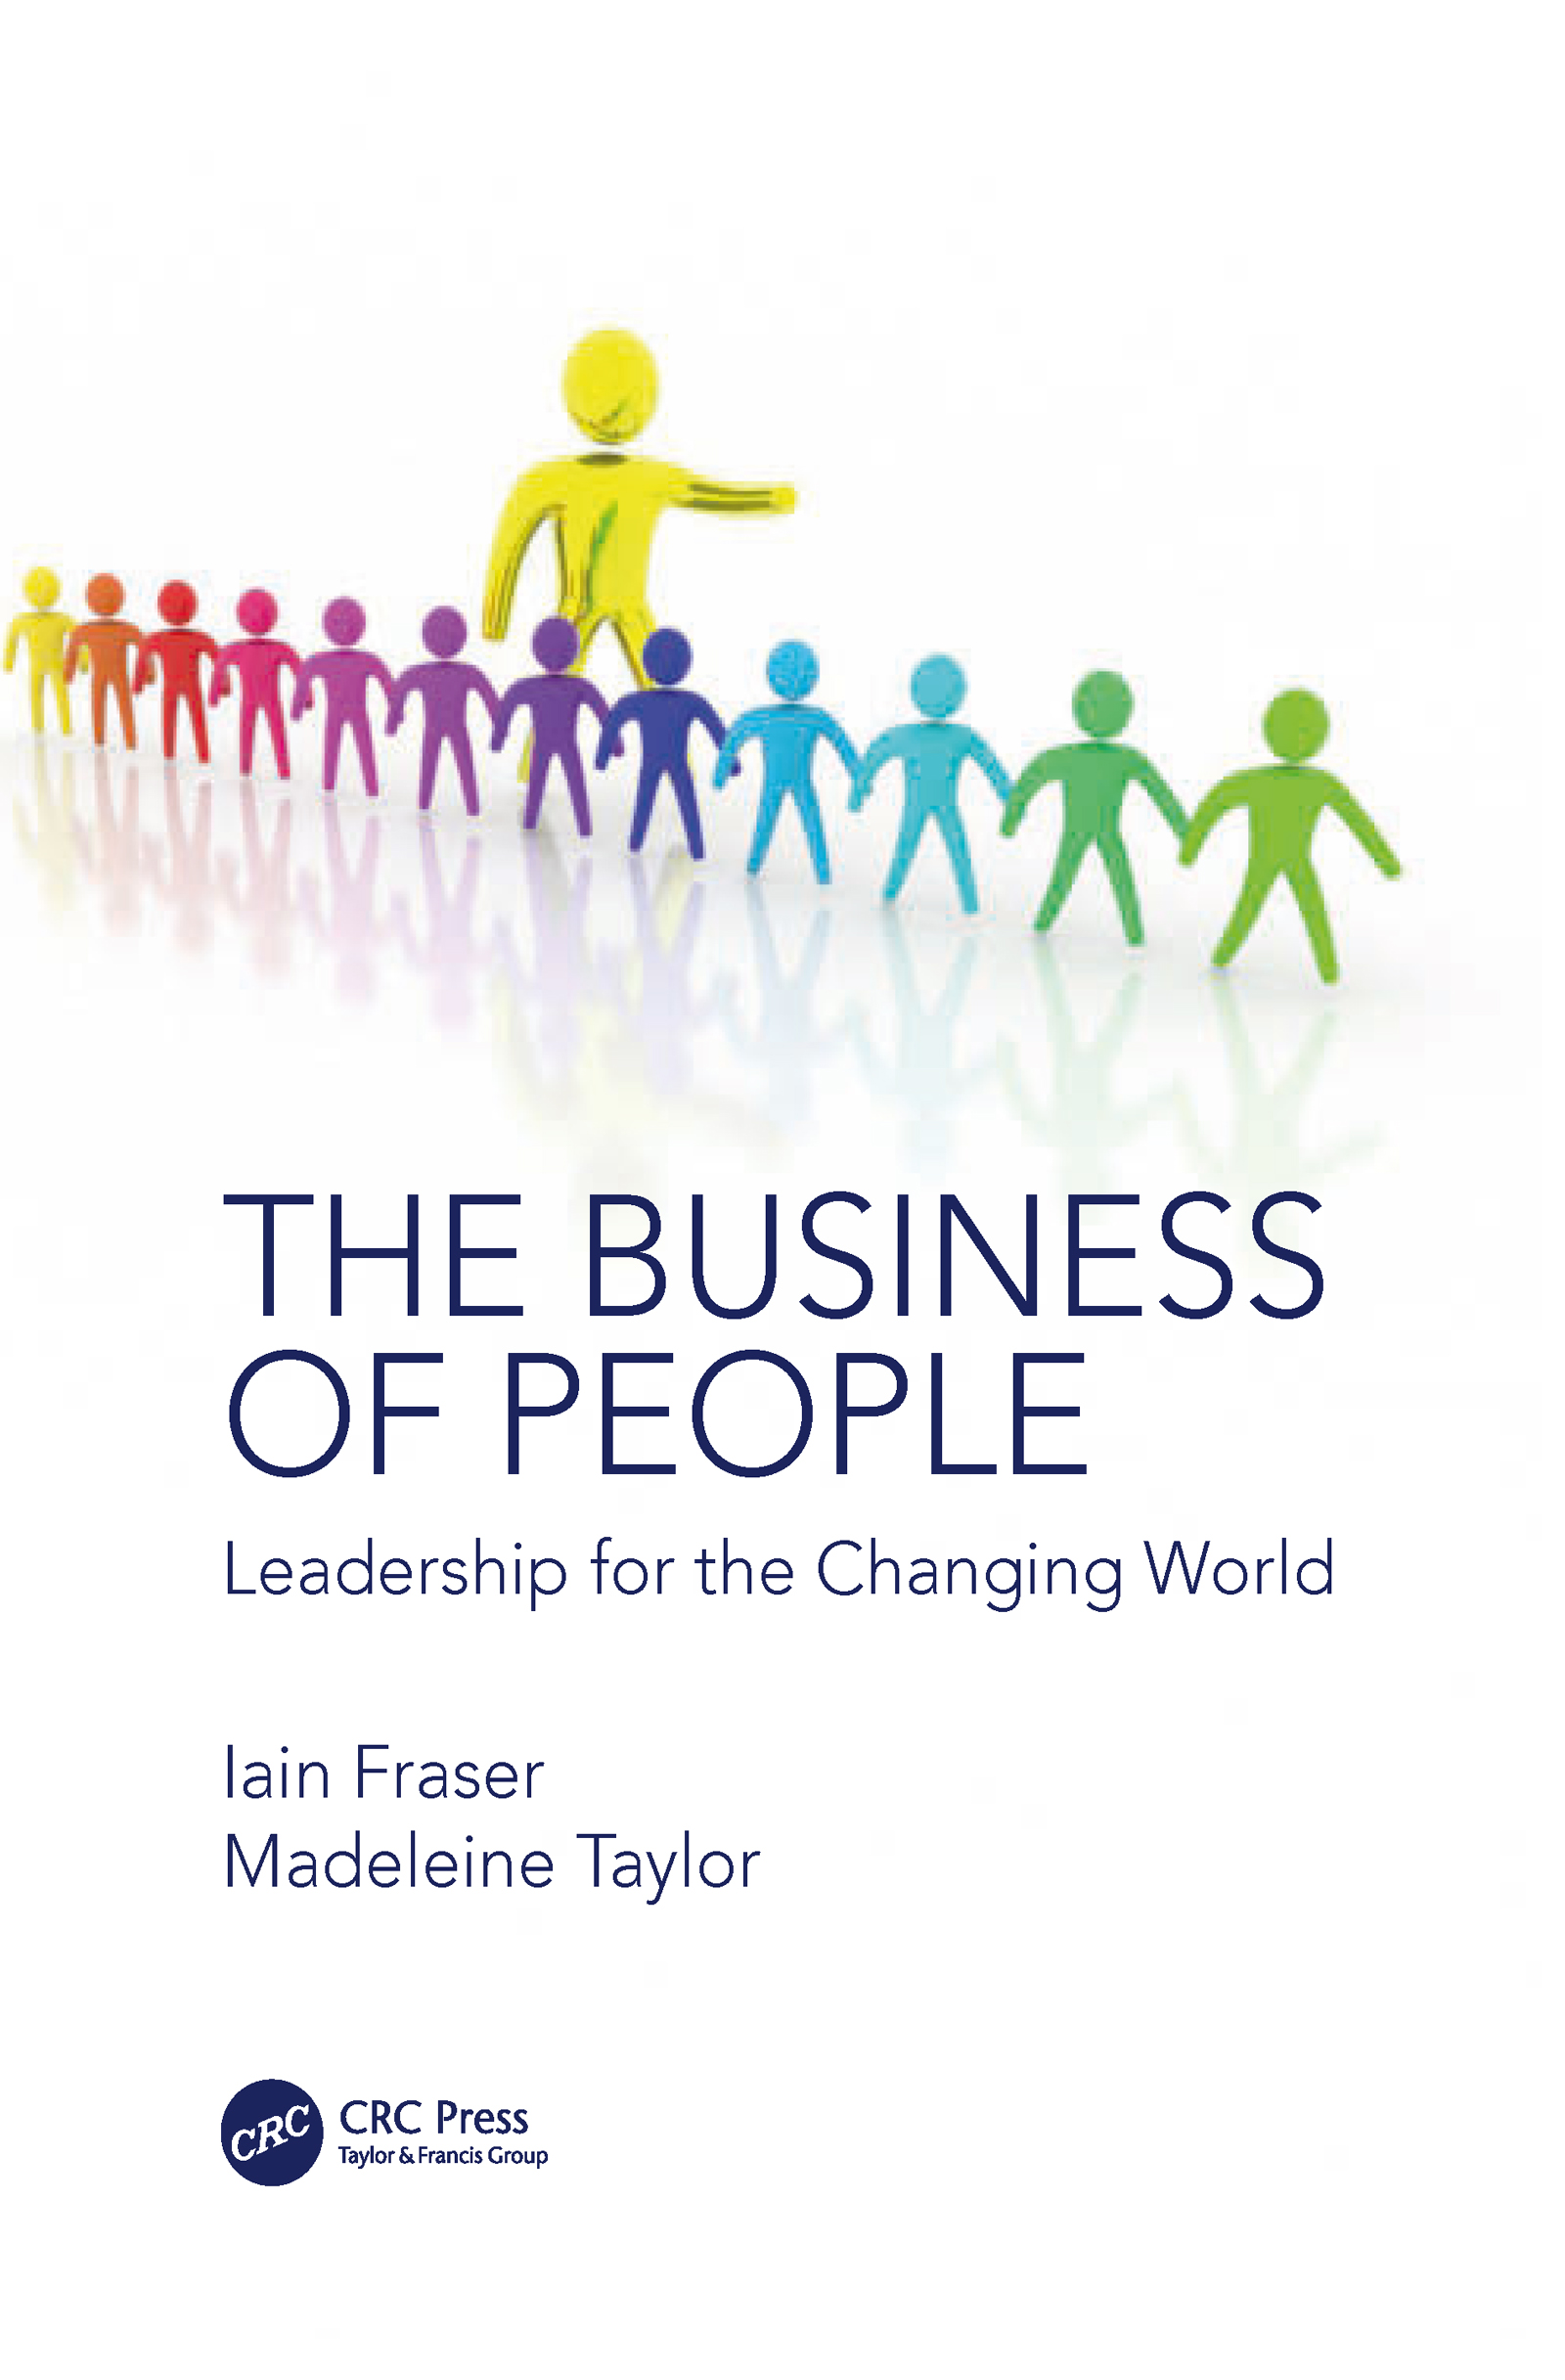 The Business of People